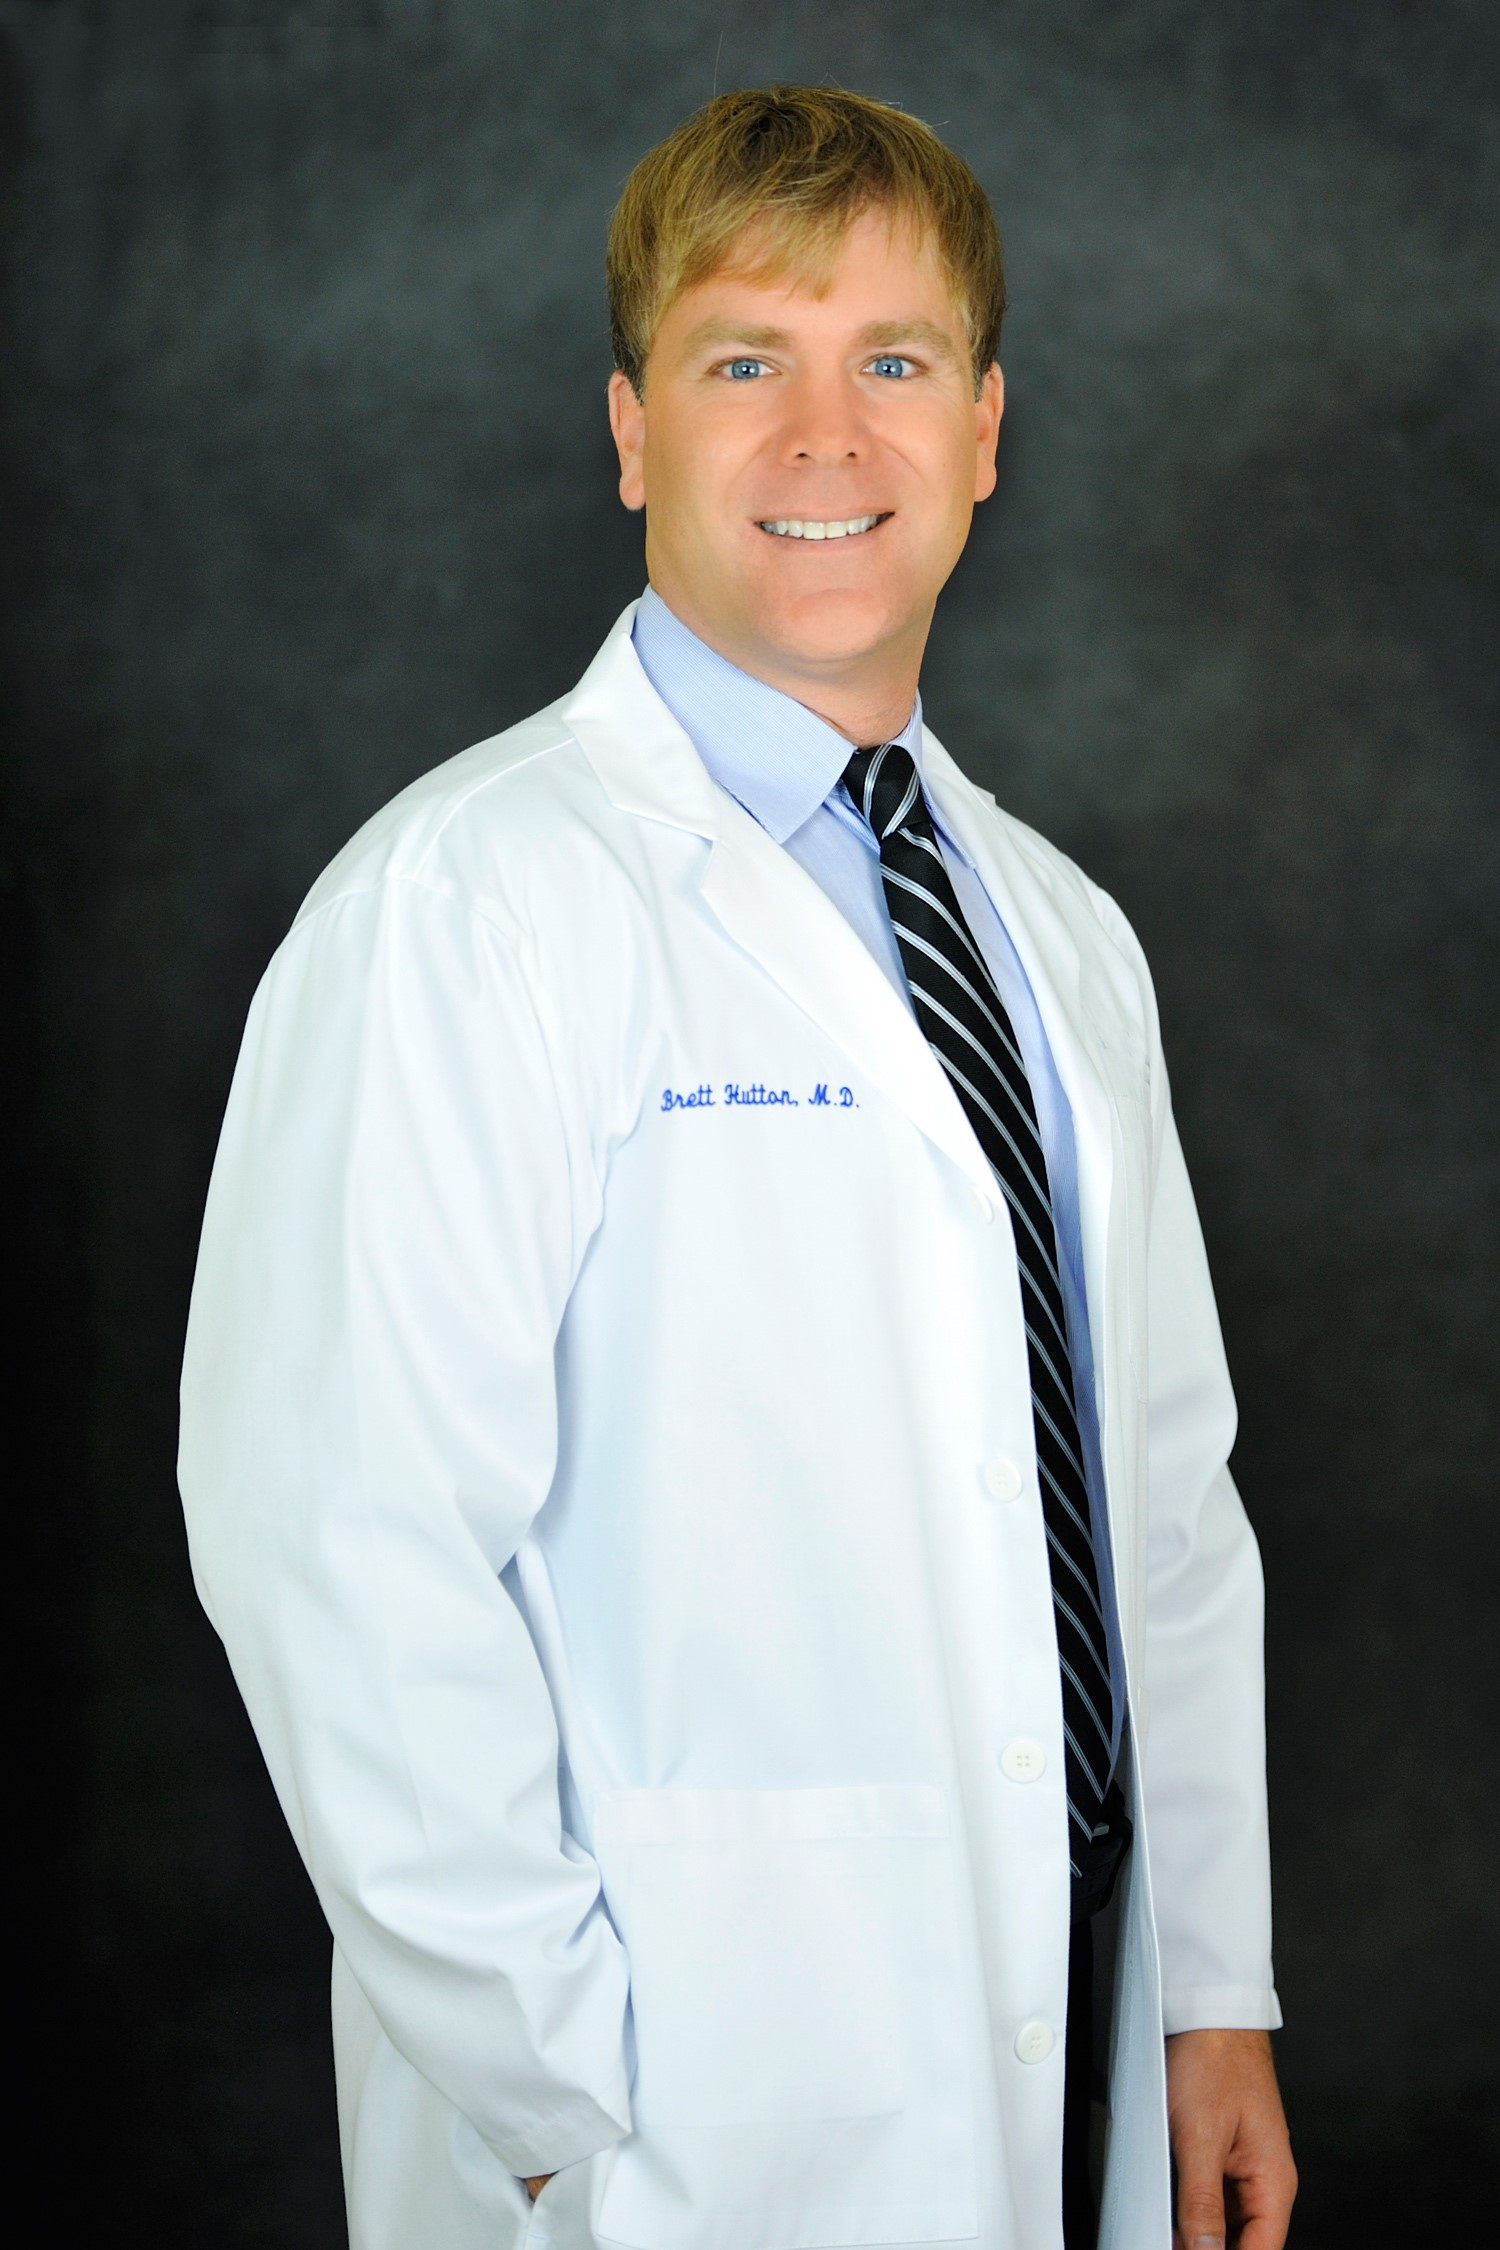 Brett R Hutton, MD